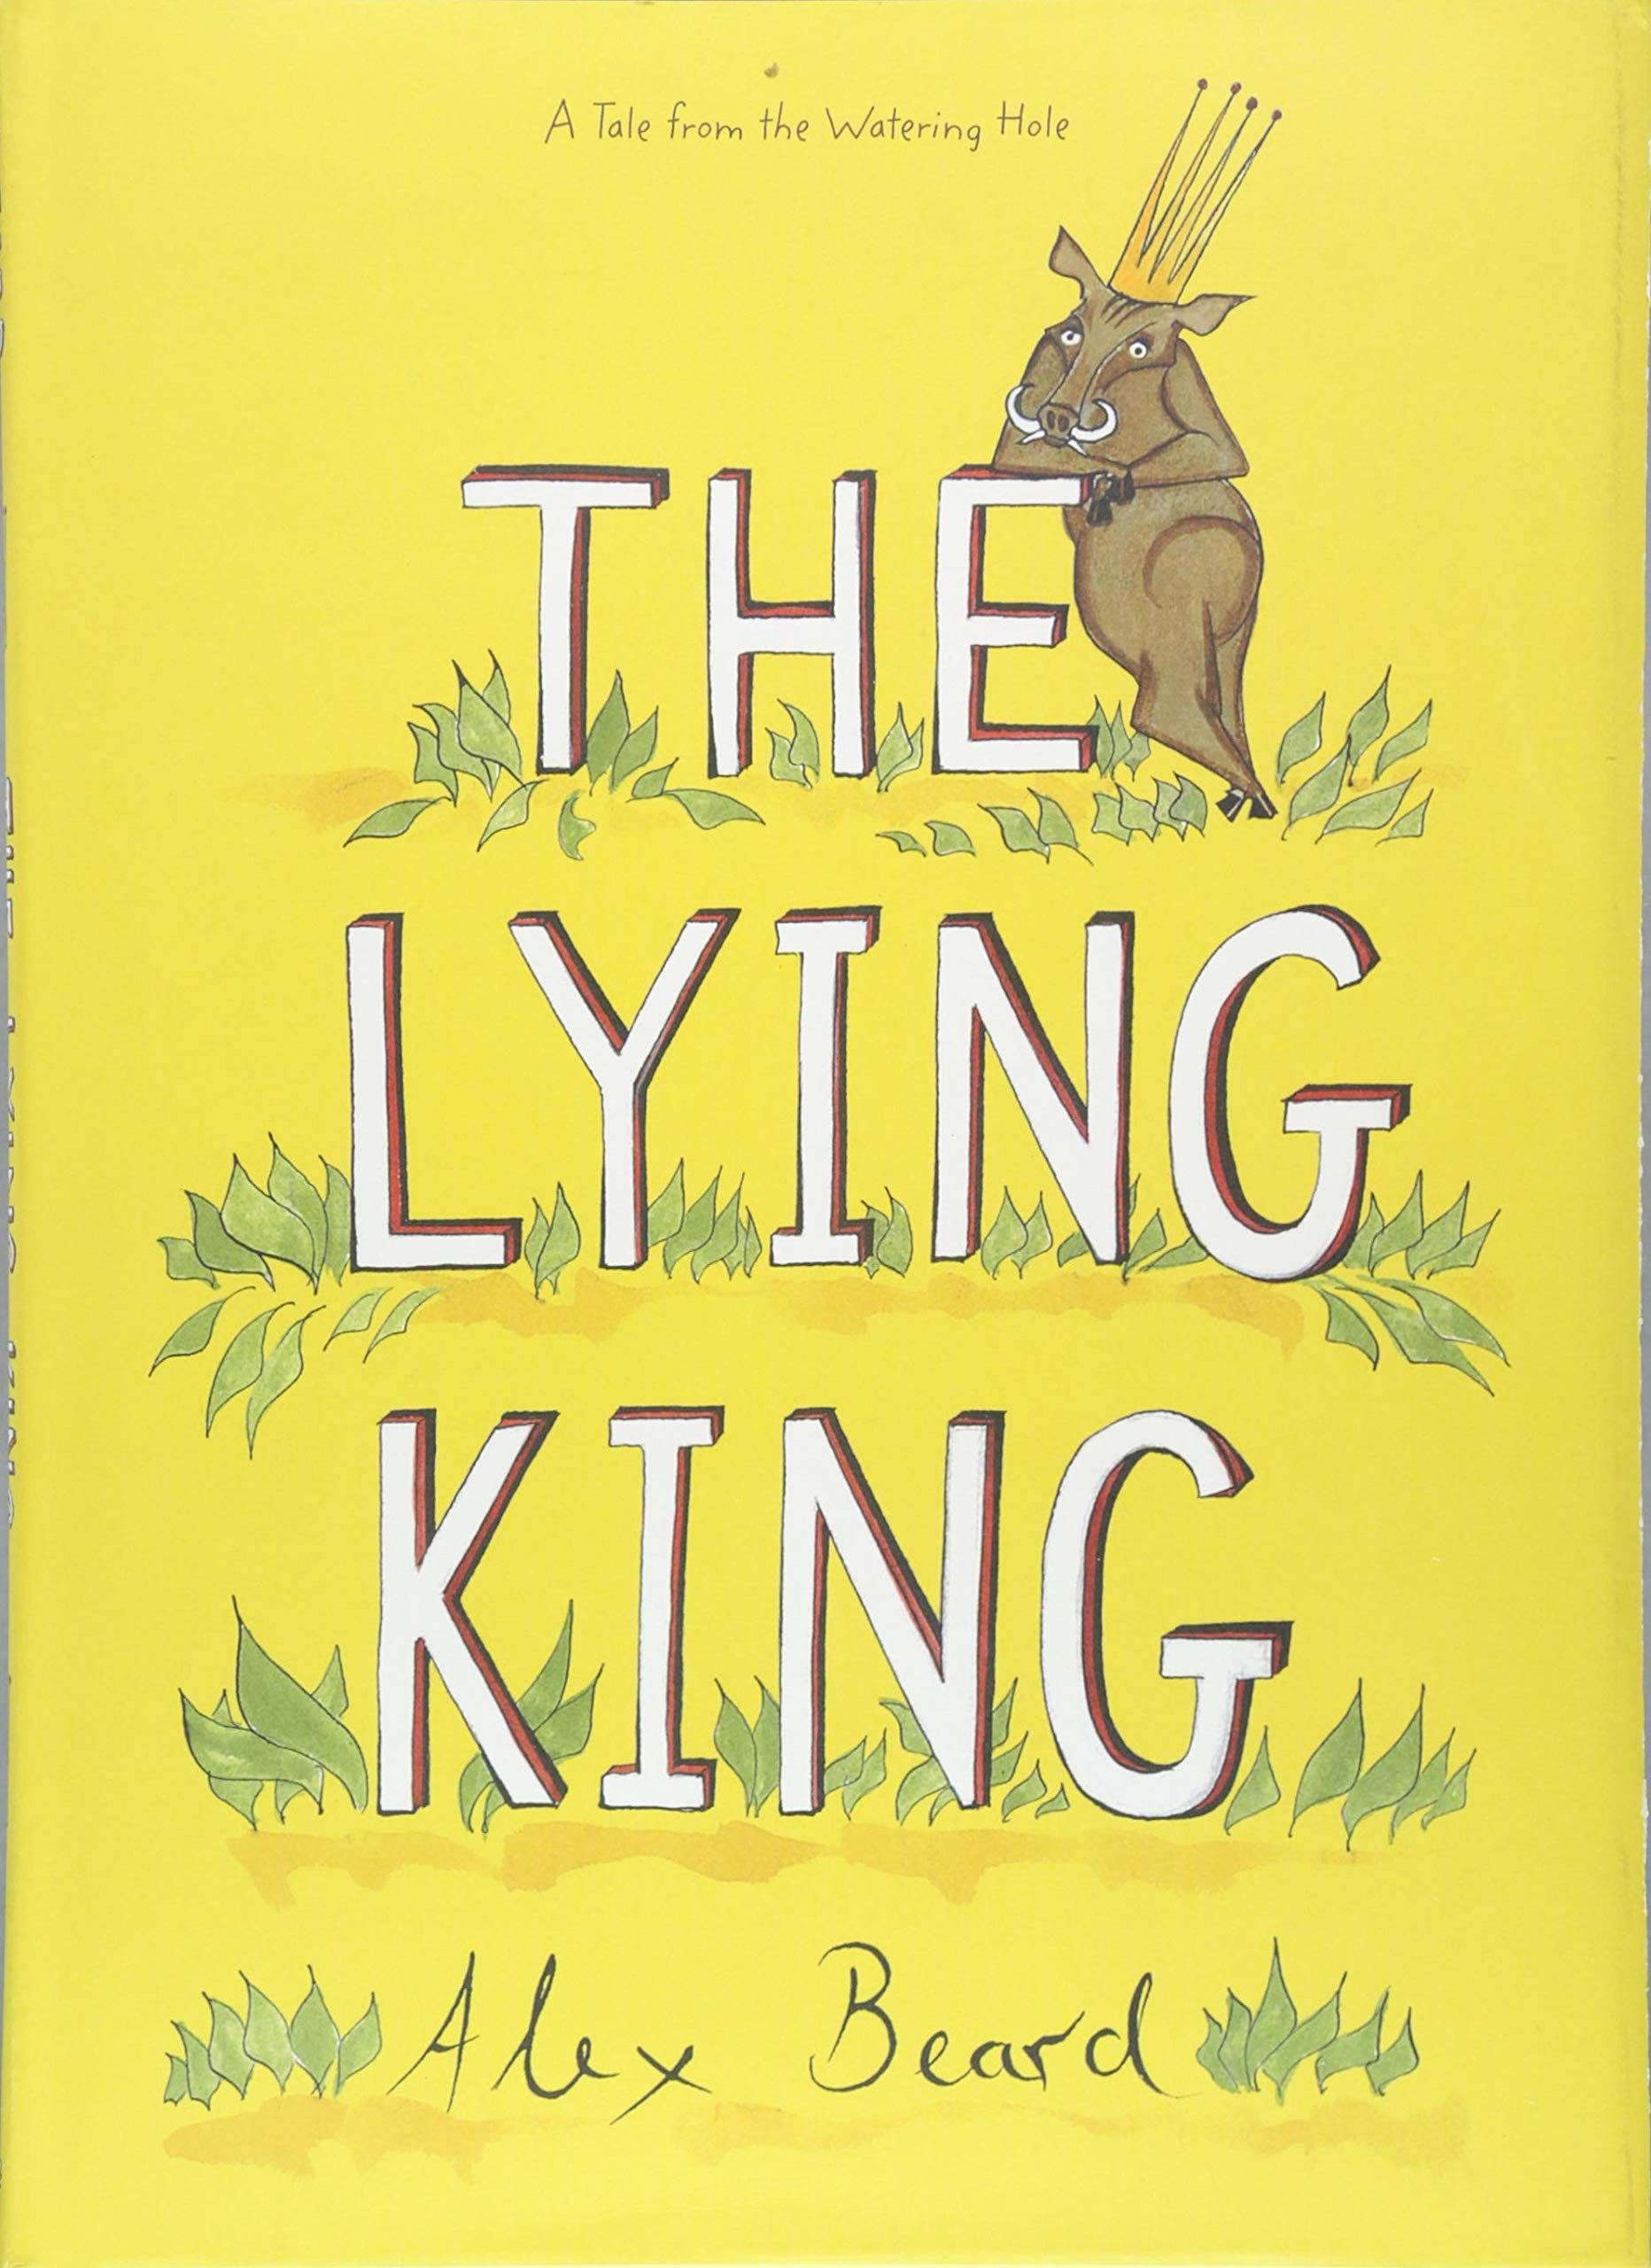 Lying King Alex Beard product image